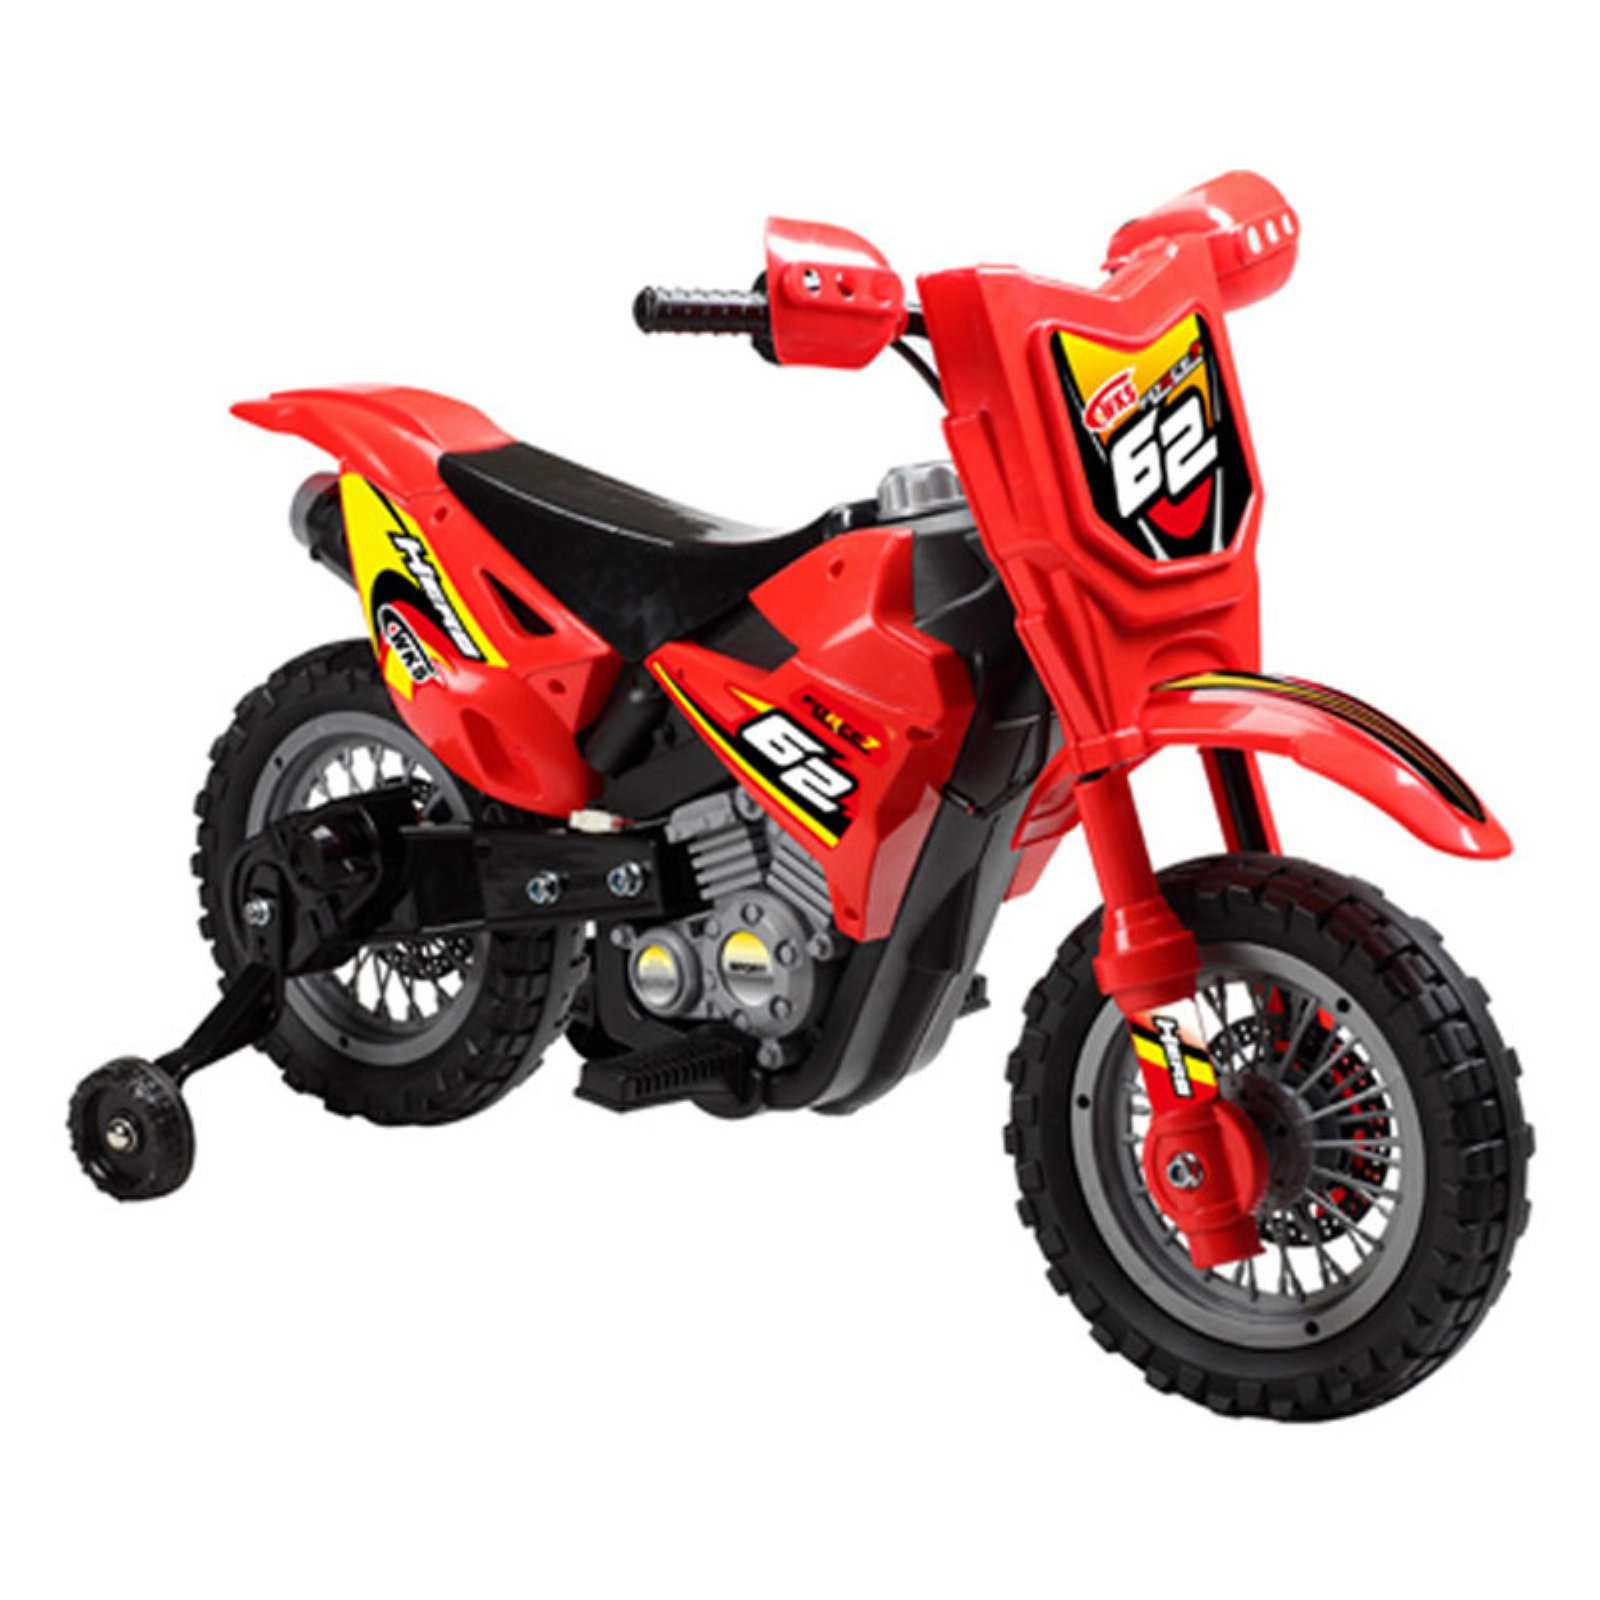 Mini Motos Dirt Bike Motorcycle Battery Powered Riding Toy Red by Digital Complex Inc